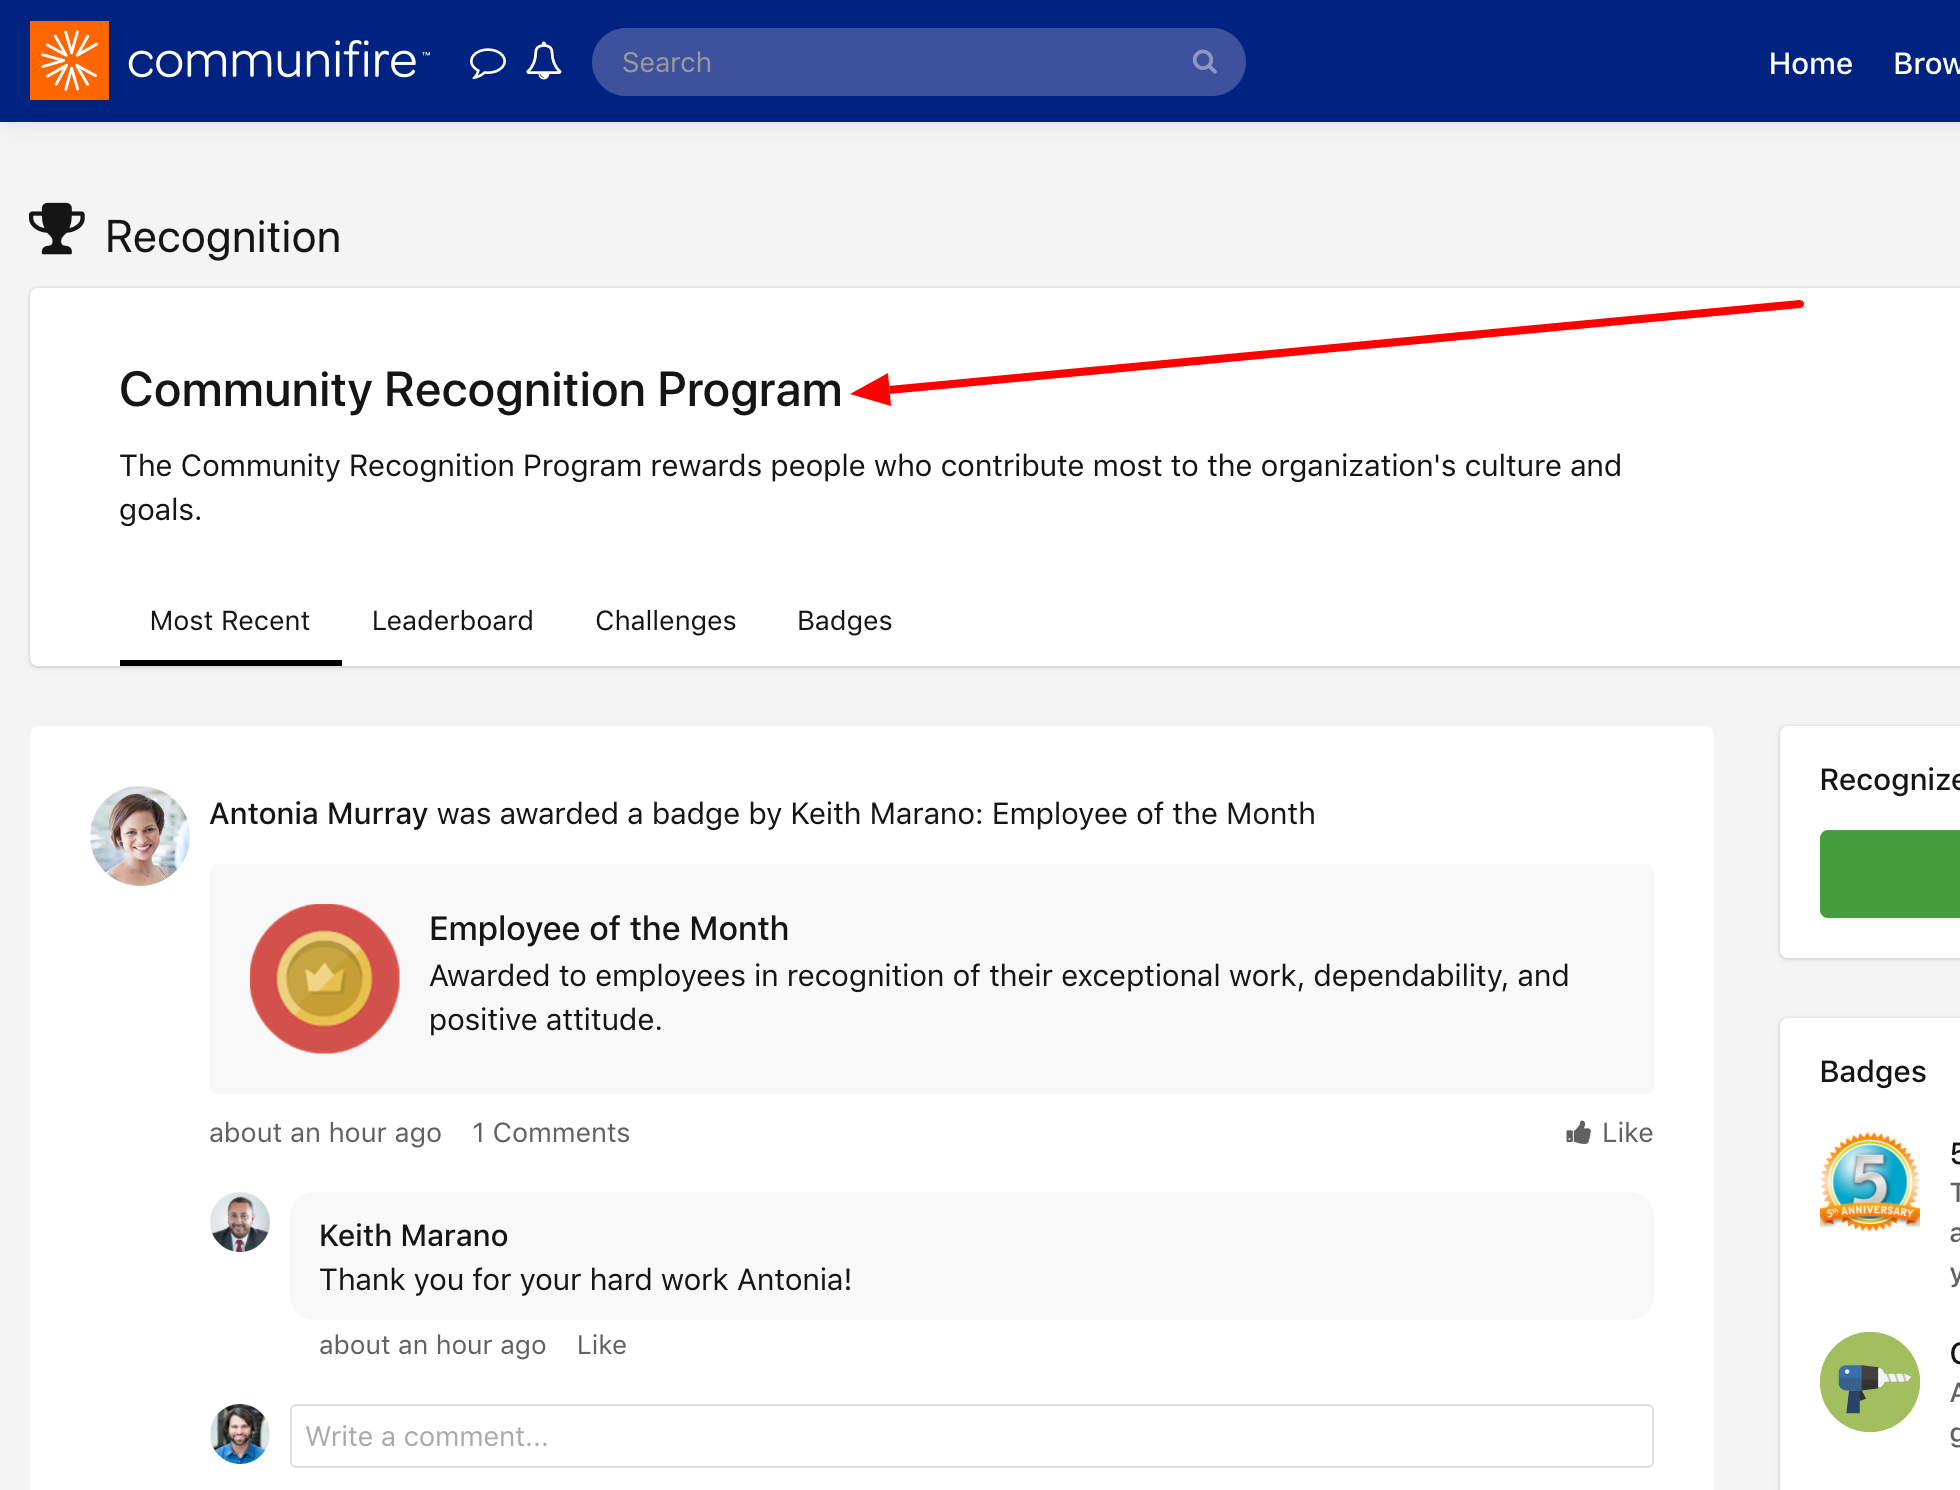 Select the recognition program.